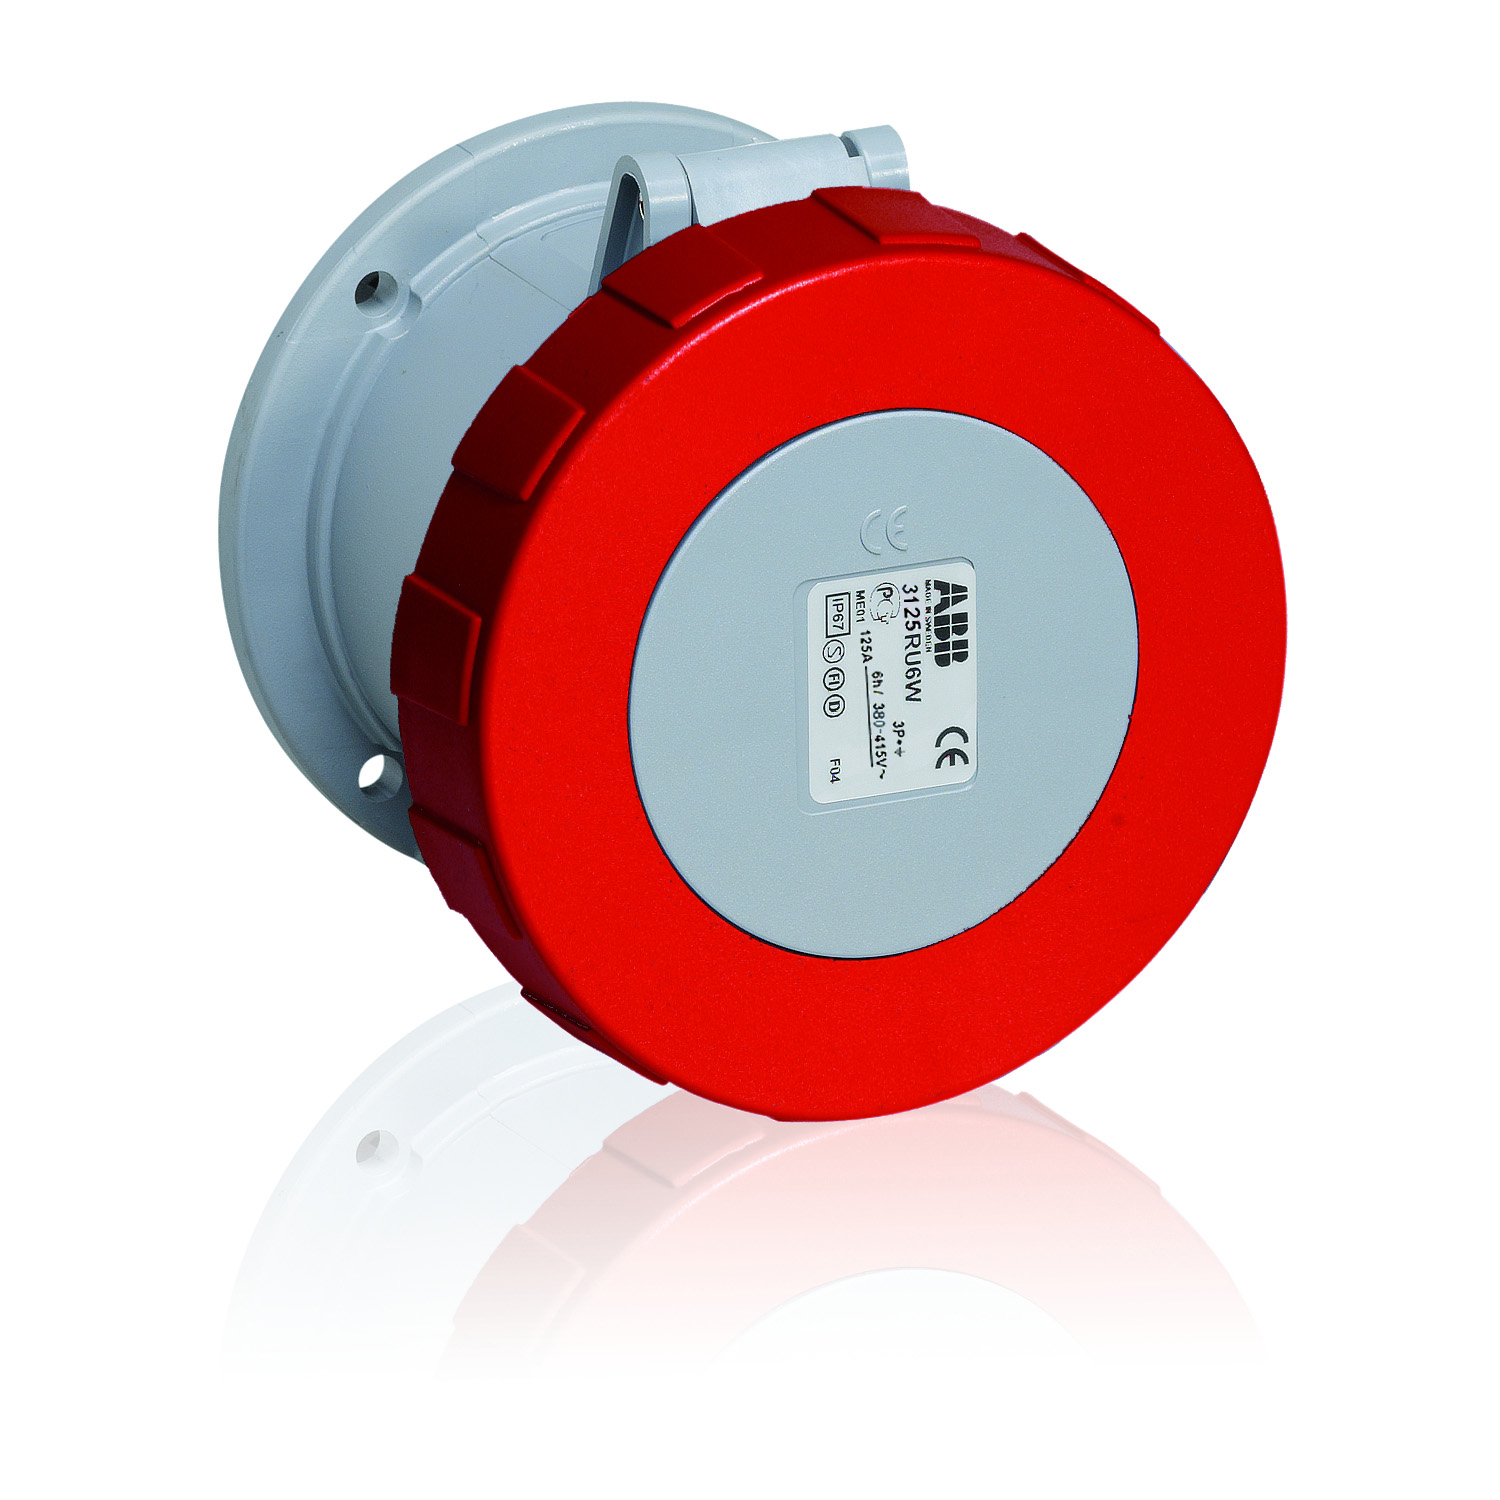 ABB ABB560R9W Pin and Sleeve Receptacle